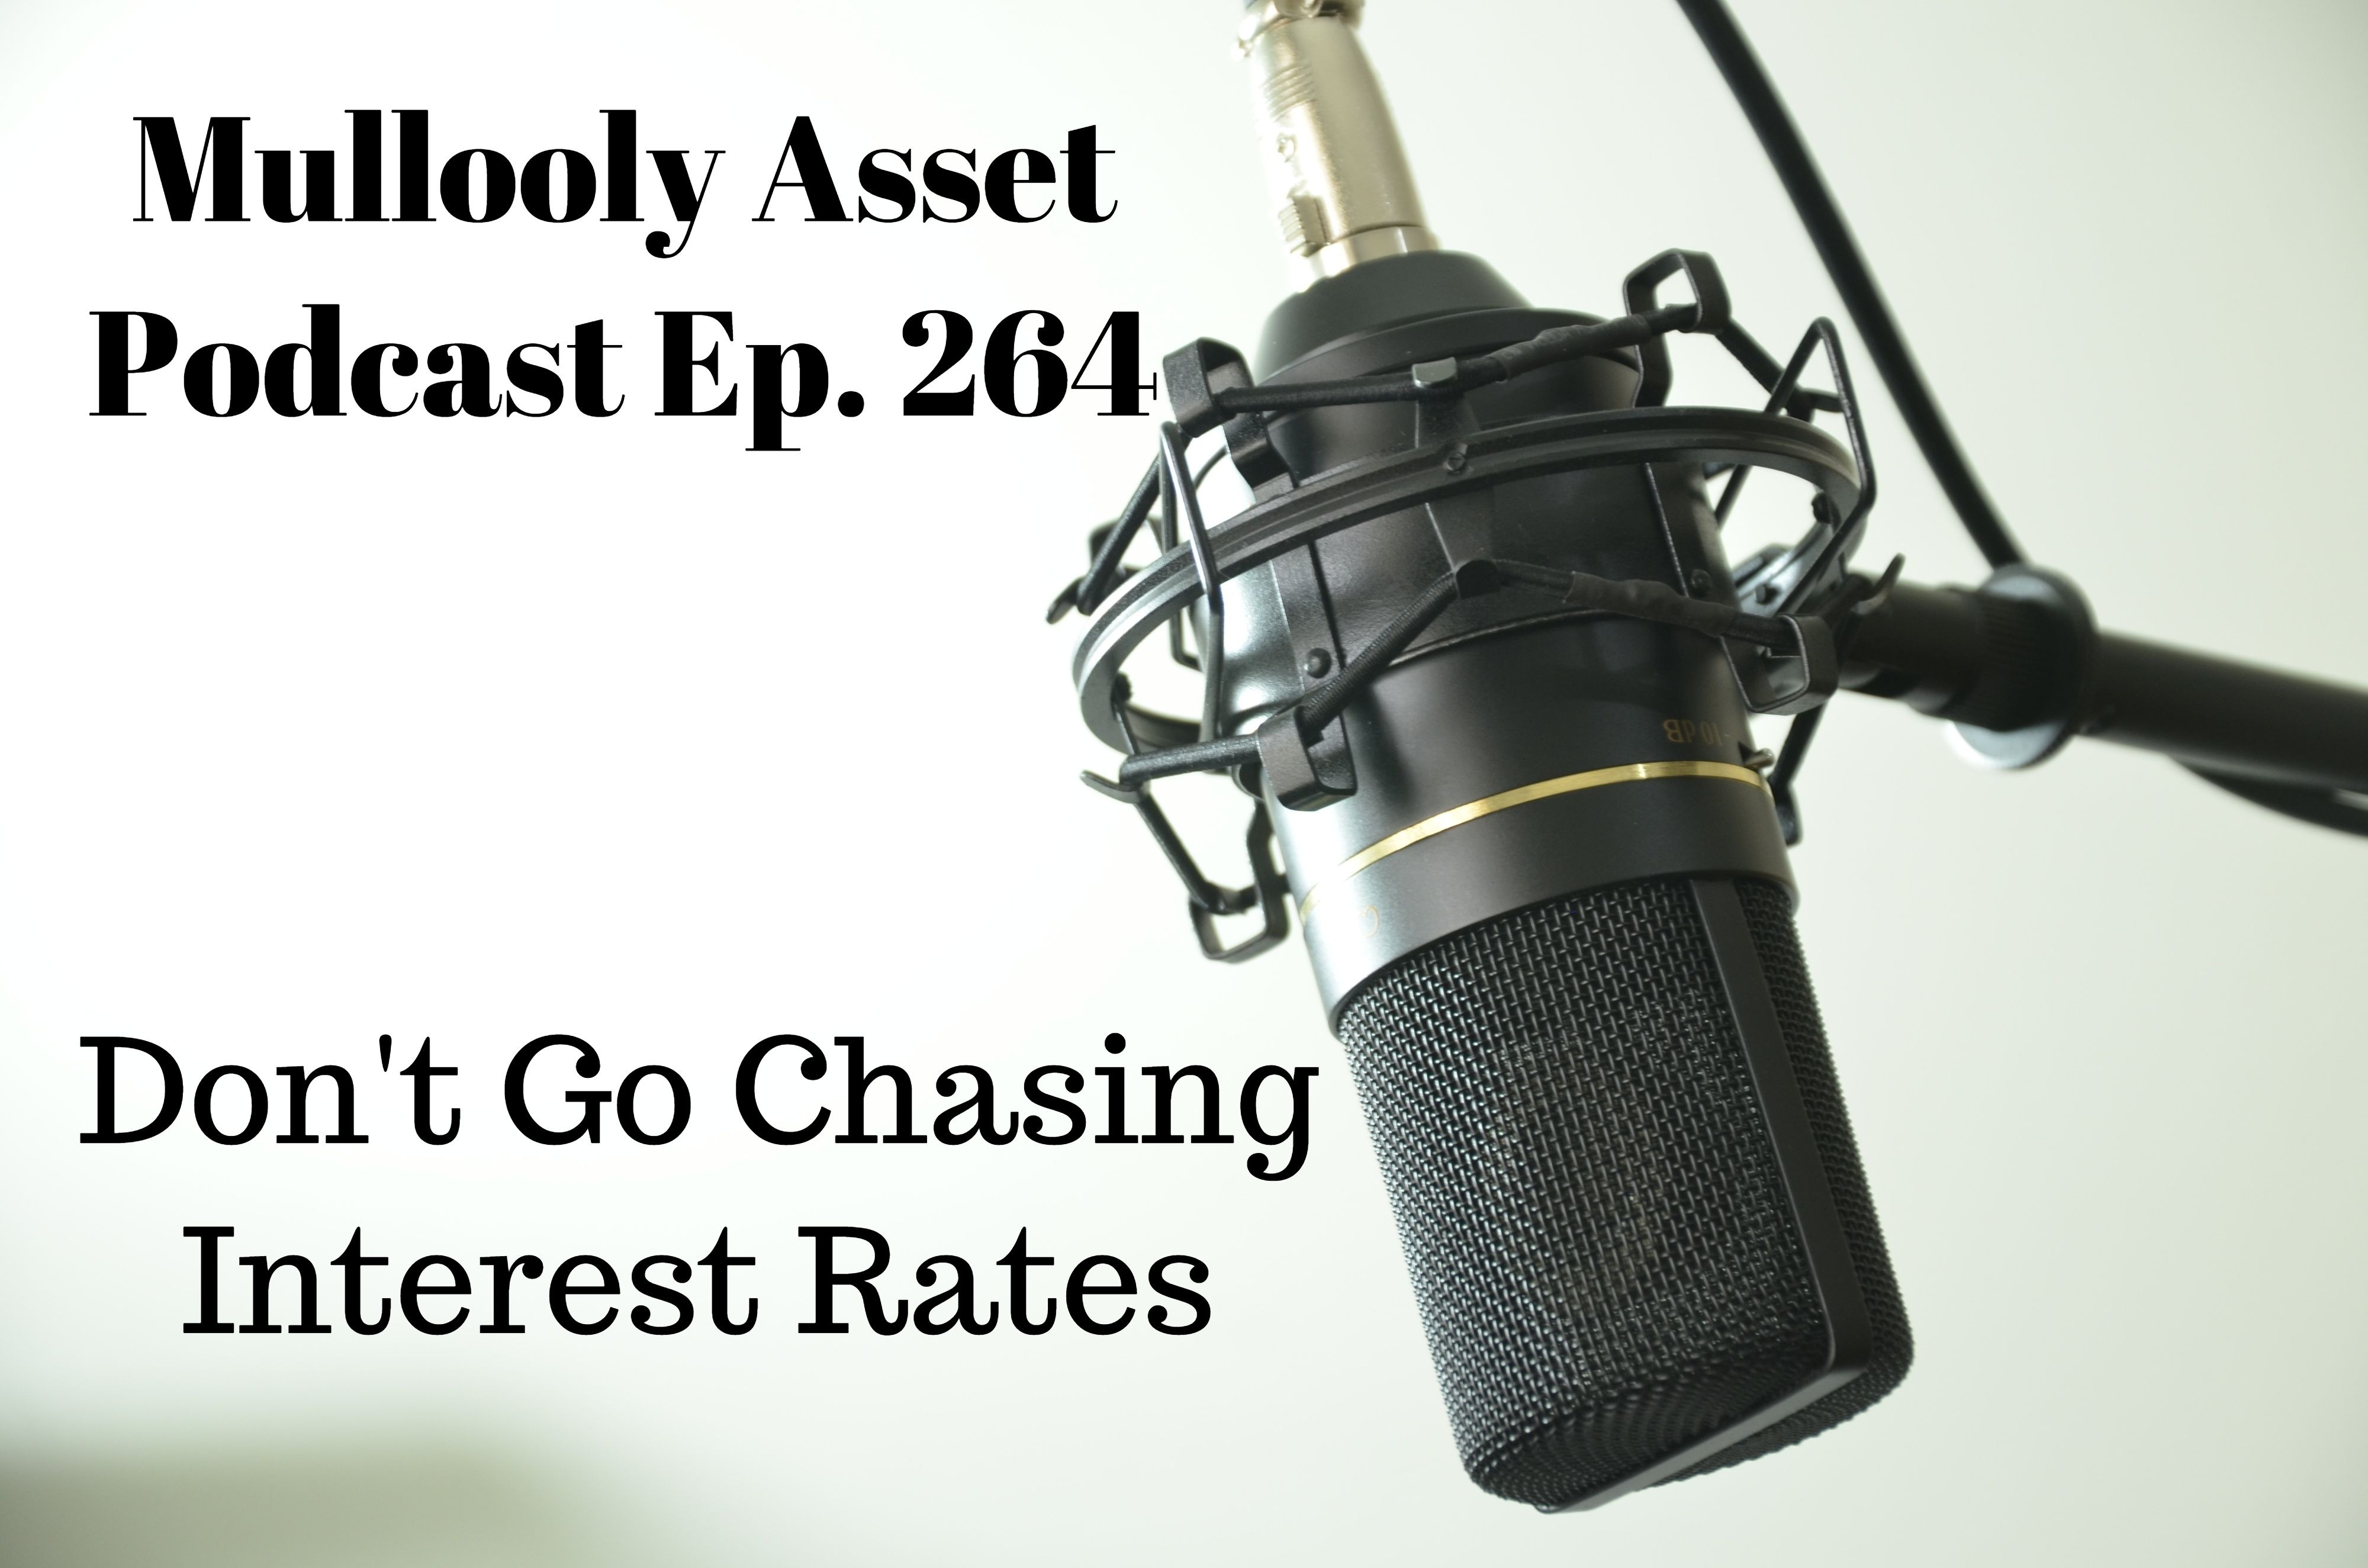 Don't Go Chasing Interest Rates